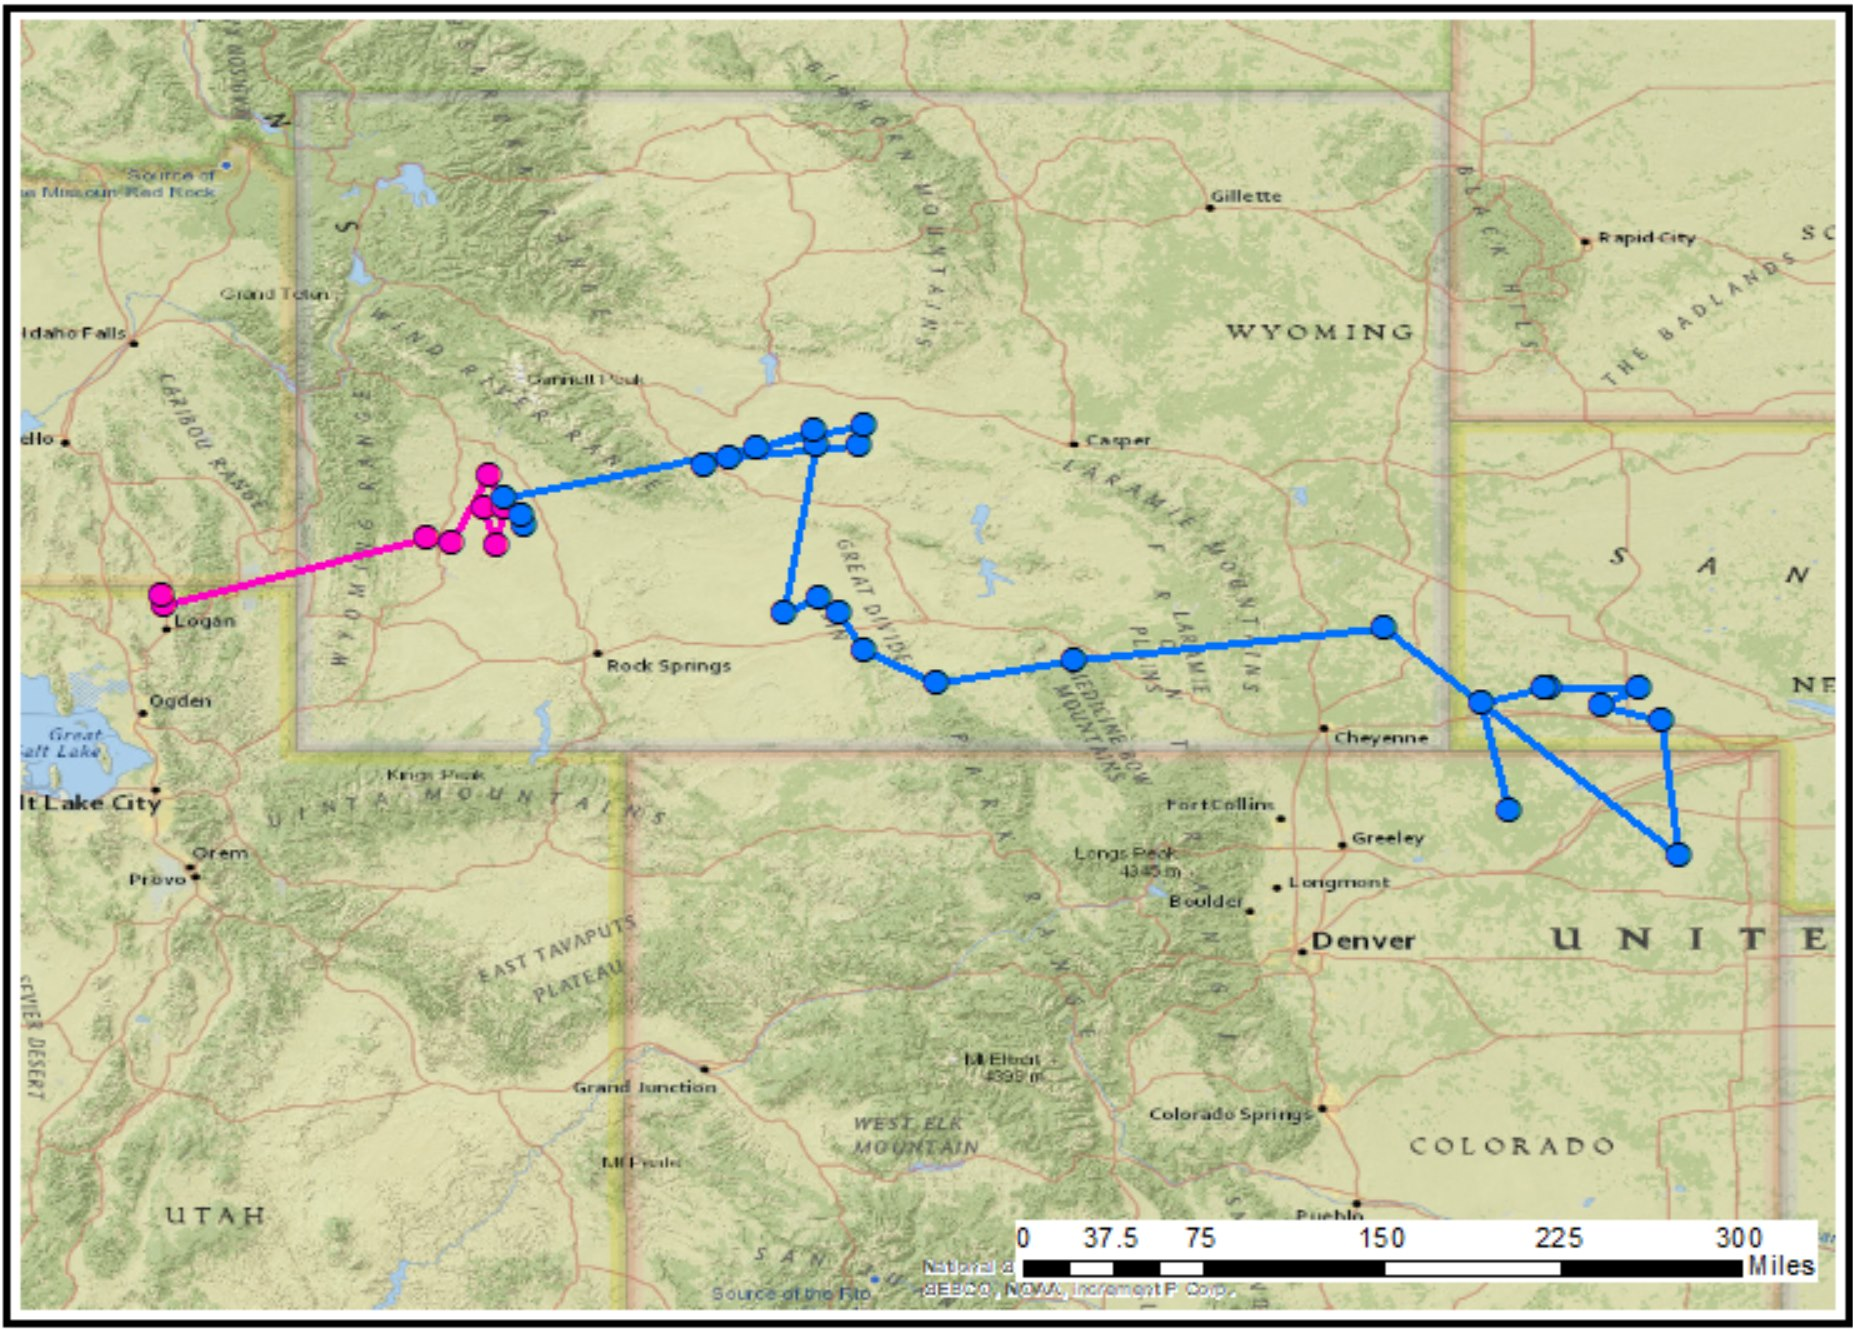 a map shows a zig-zag of lines. A pink track ends near Logan, Utah and begins in western Wyoming. A second blue track begins in western Wyoming and wanders across to Nebraska before ending in northeastern Colorado